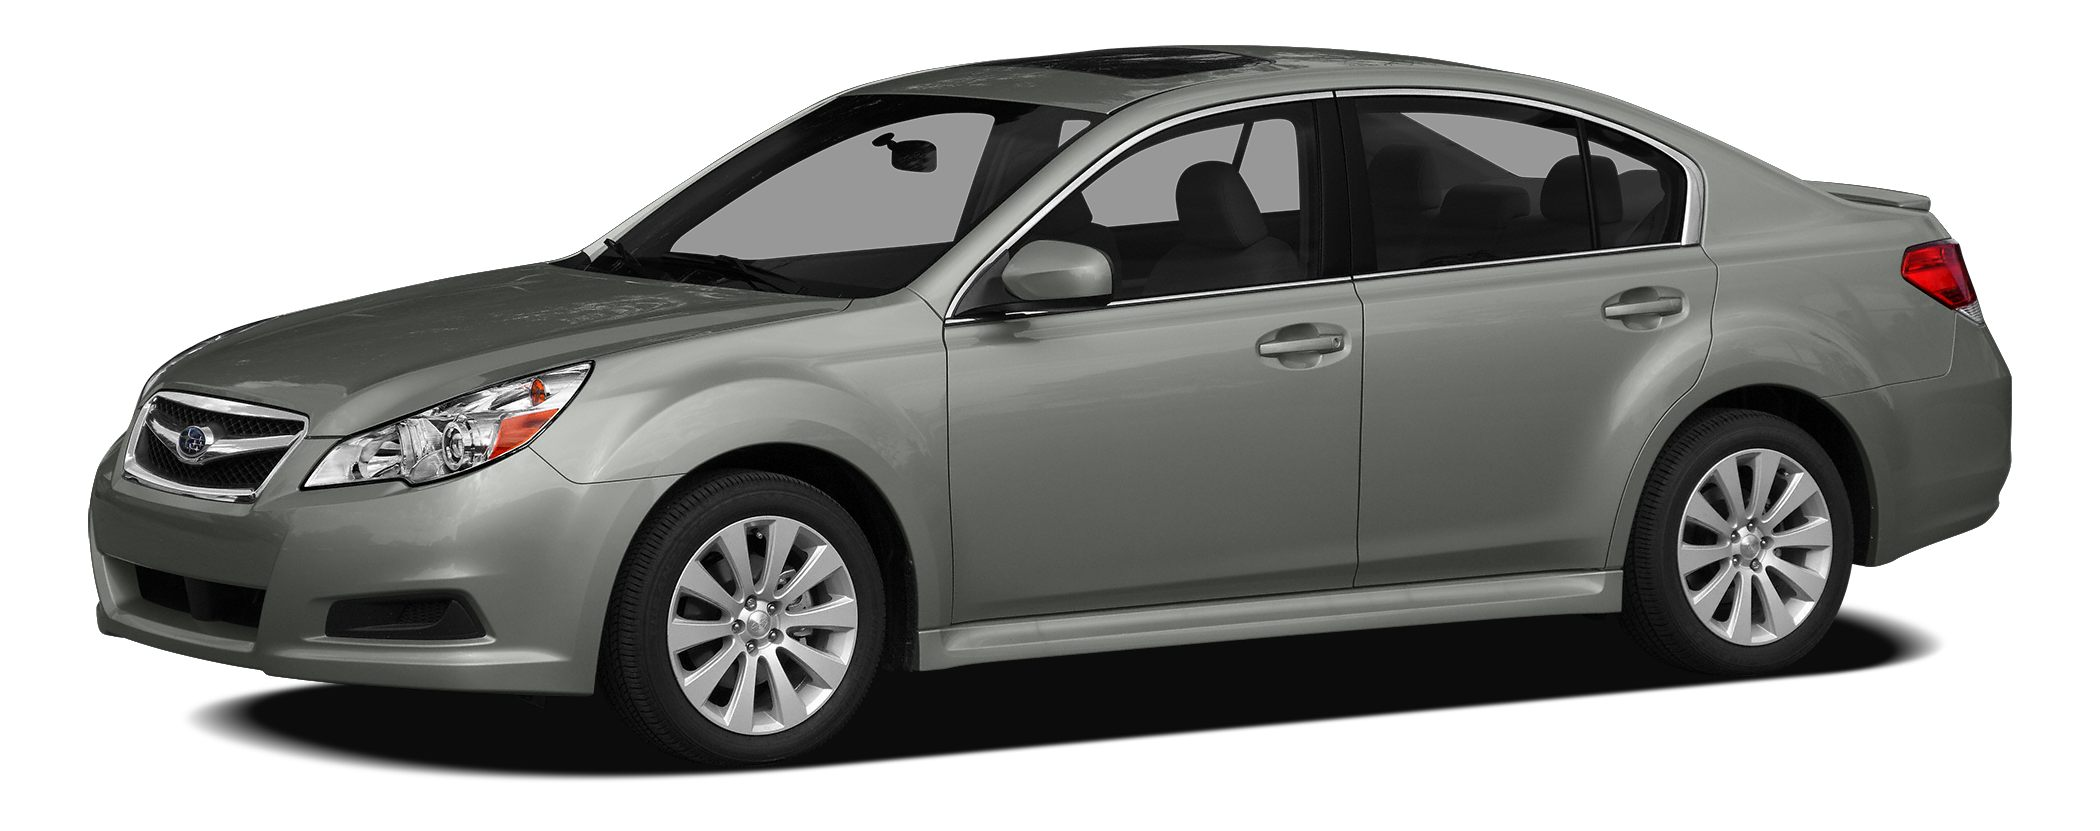 2010 Subaru Legacy 25i Premium Lifetime Engine Warranty at NO CHARGE on all pre-owned vehicles Co